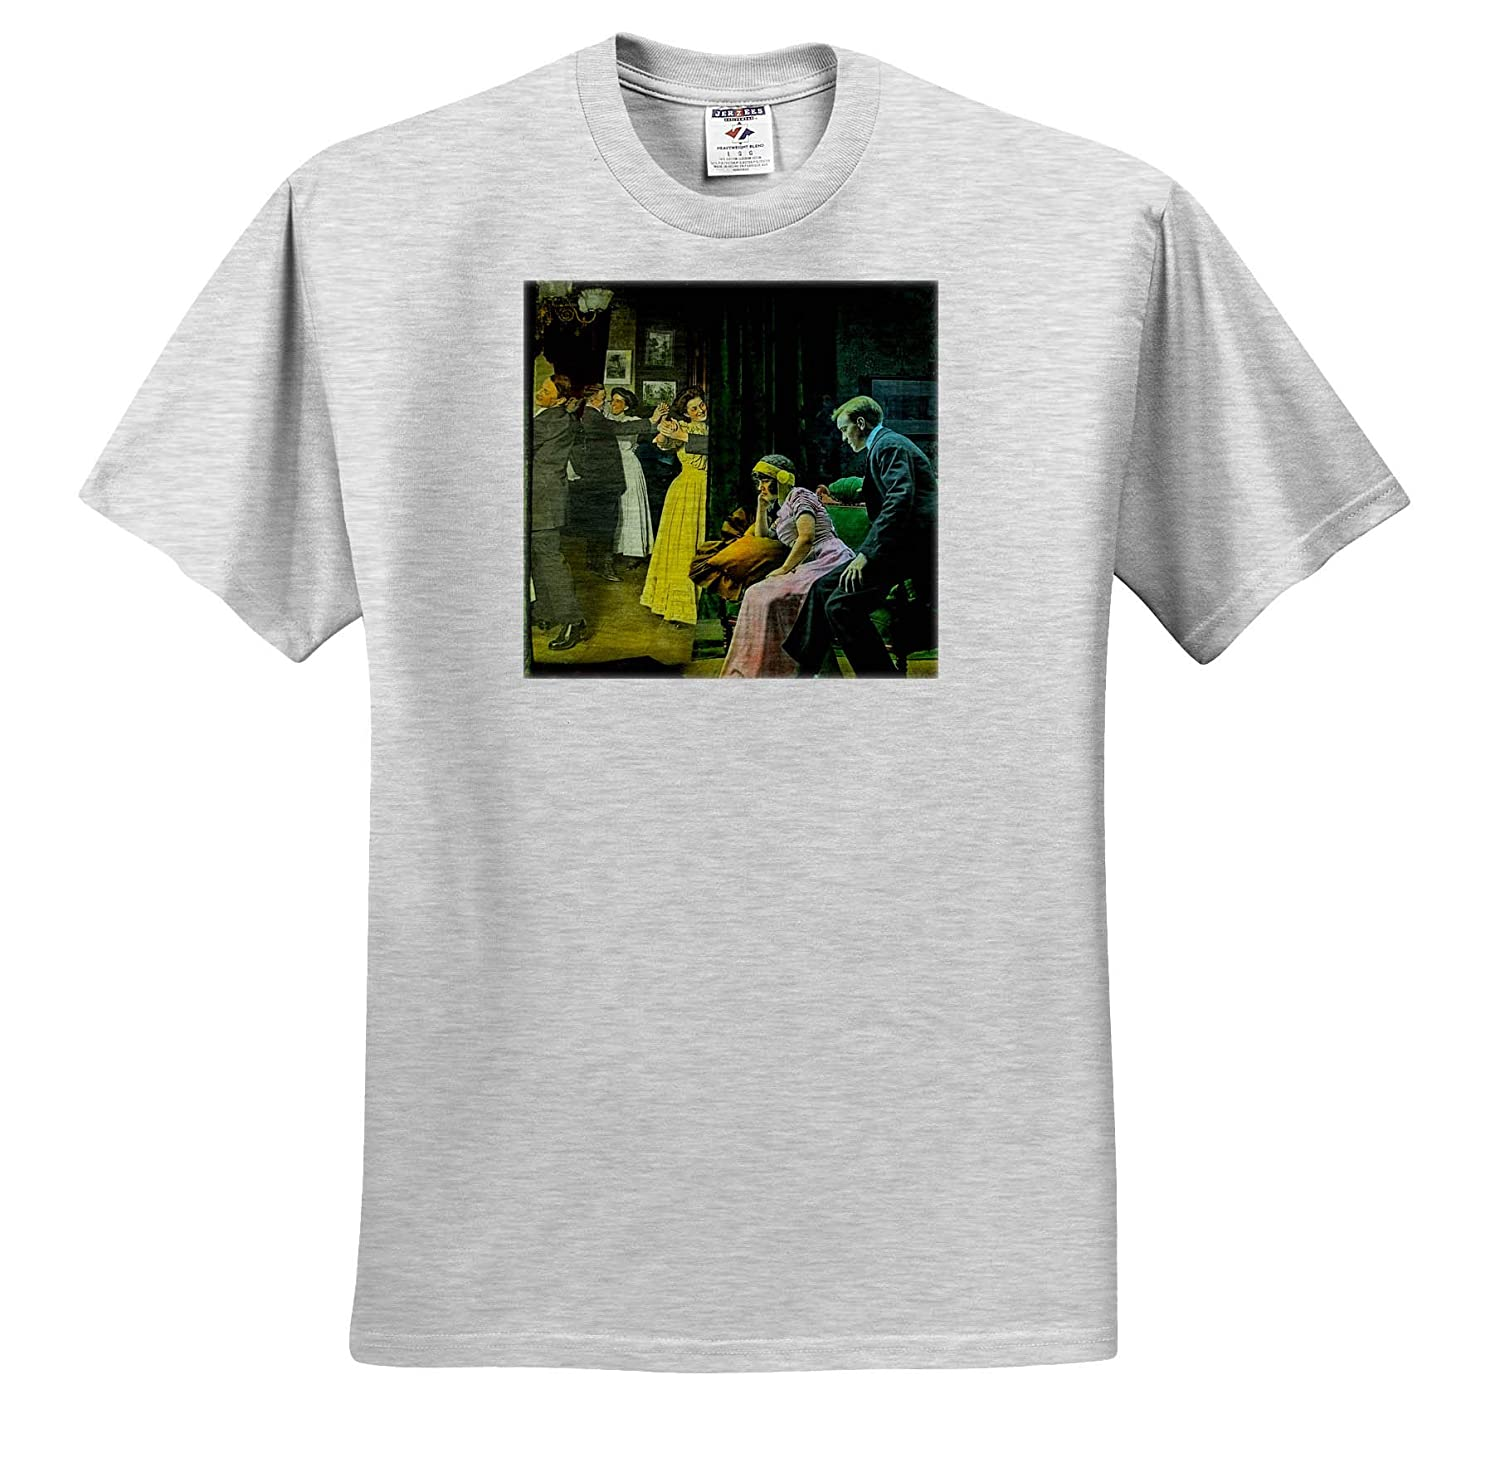 T-Shirts Scott and Van Altena Sing Along Slide A Bad Time at The Party Magic Lantern 3dRose Scenes from The Past